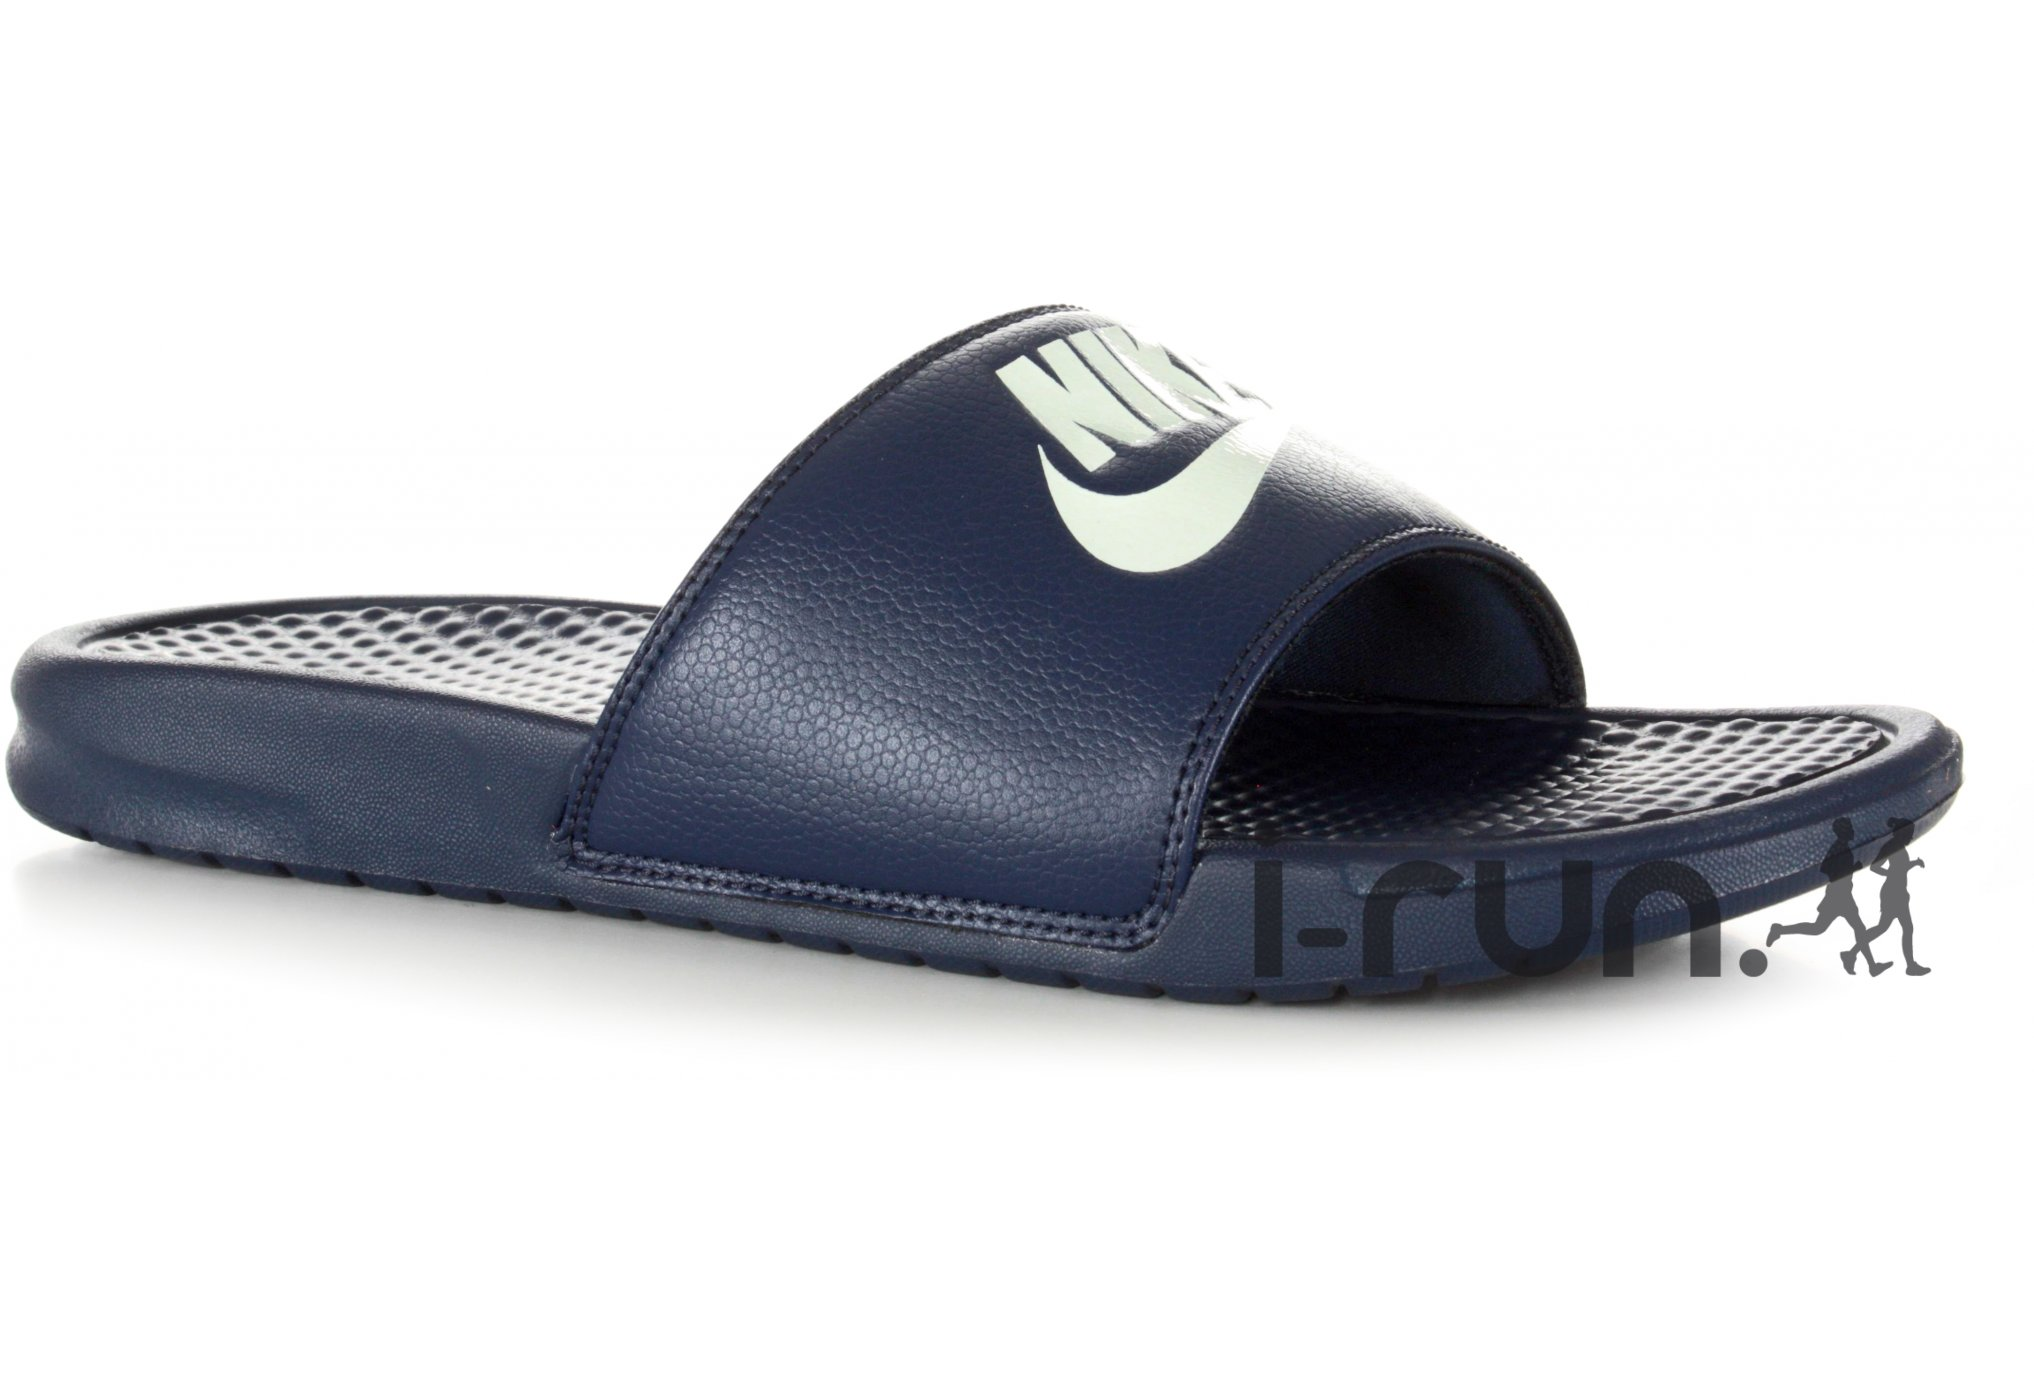 low priced 5a17b efdc0 Nike Claquettes Benassi JDI M Chaussures homme